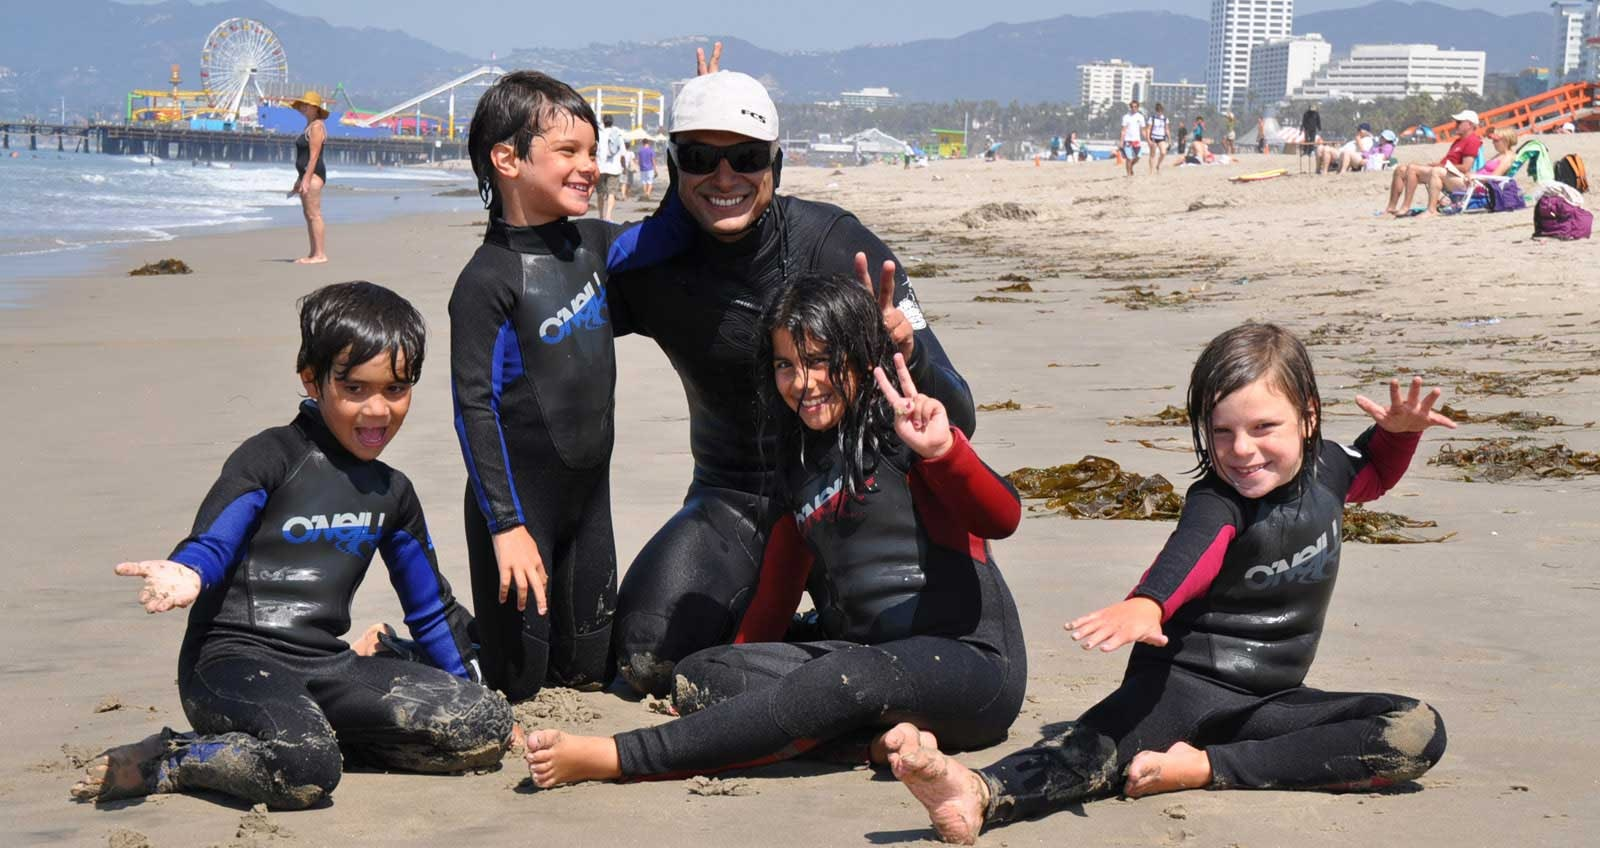 Surfing Lessons from Experts in Santa Monica by personalsurf